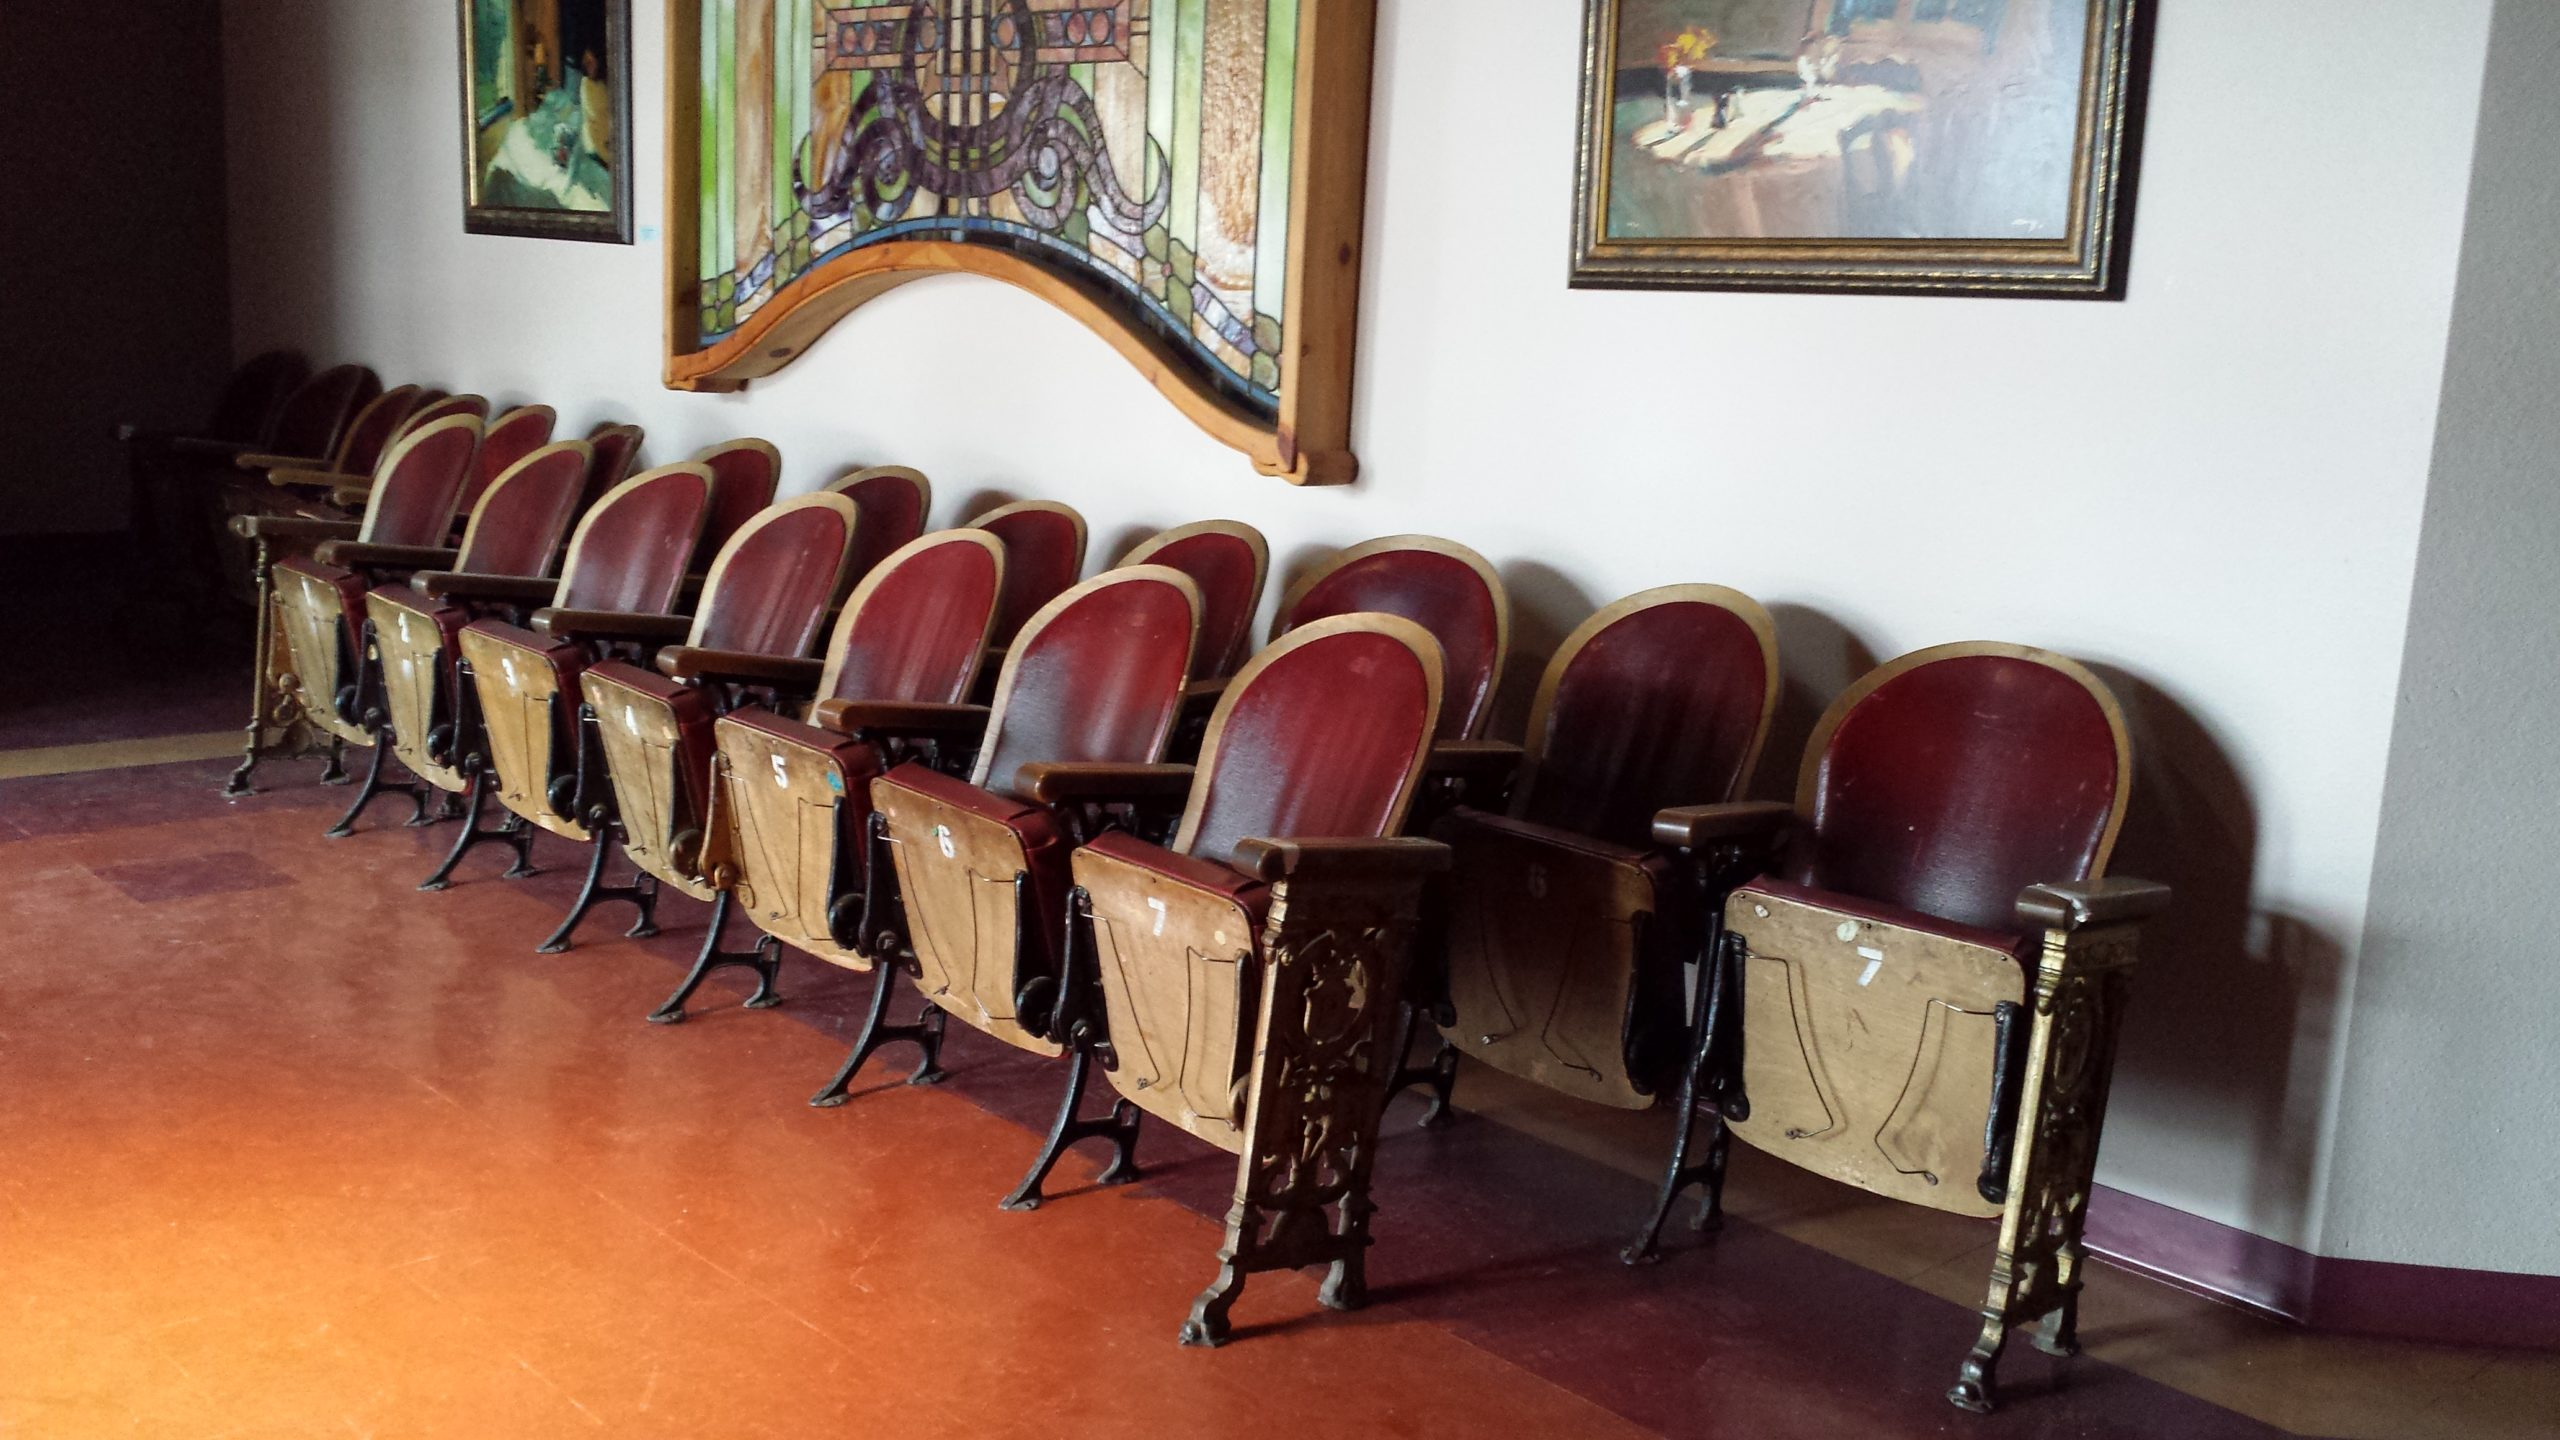 Jones Theater, Westcliffe, Colorado - Chairs lined up in the Studio 2 lobby waiting for the theater floor restoration